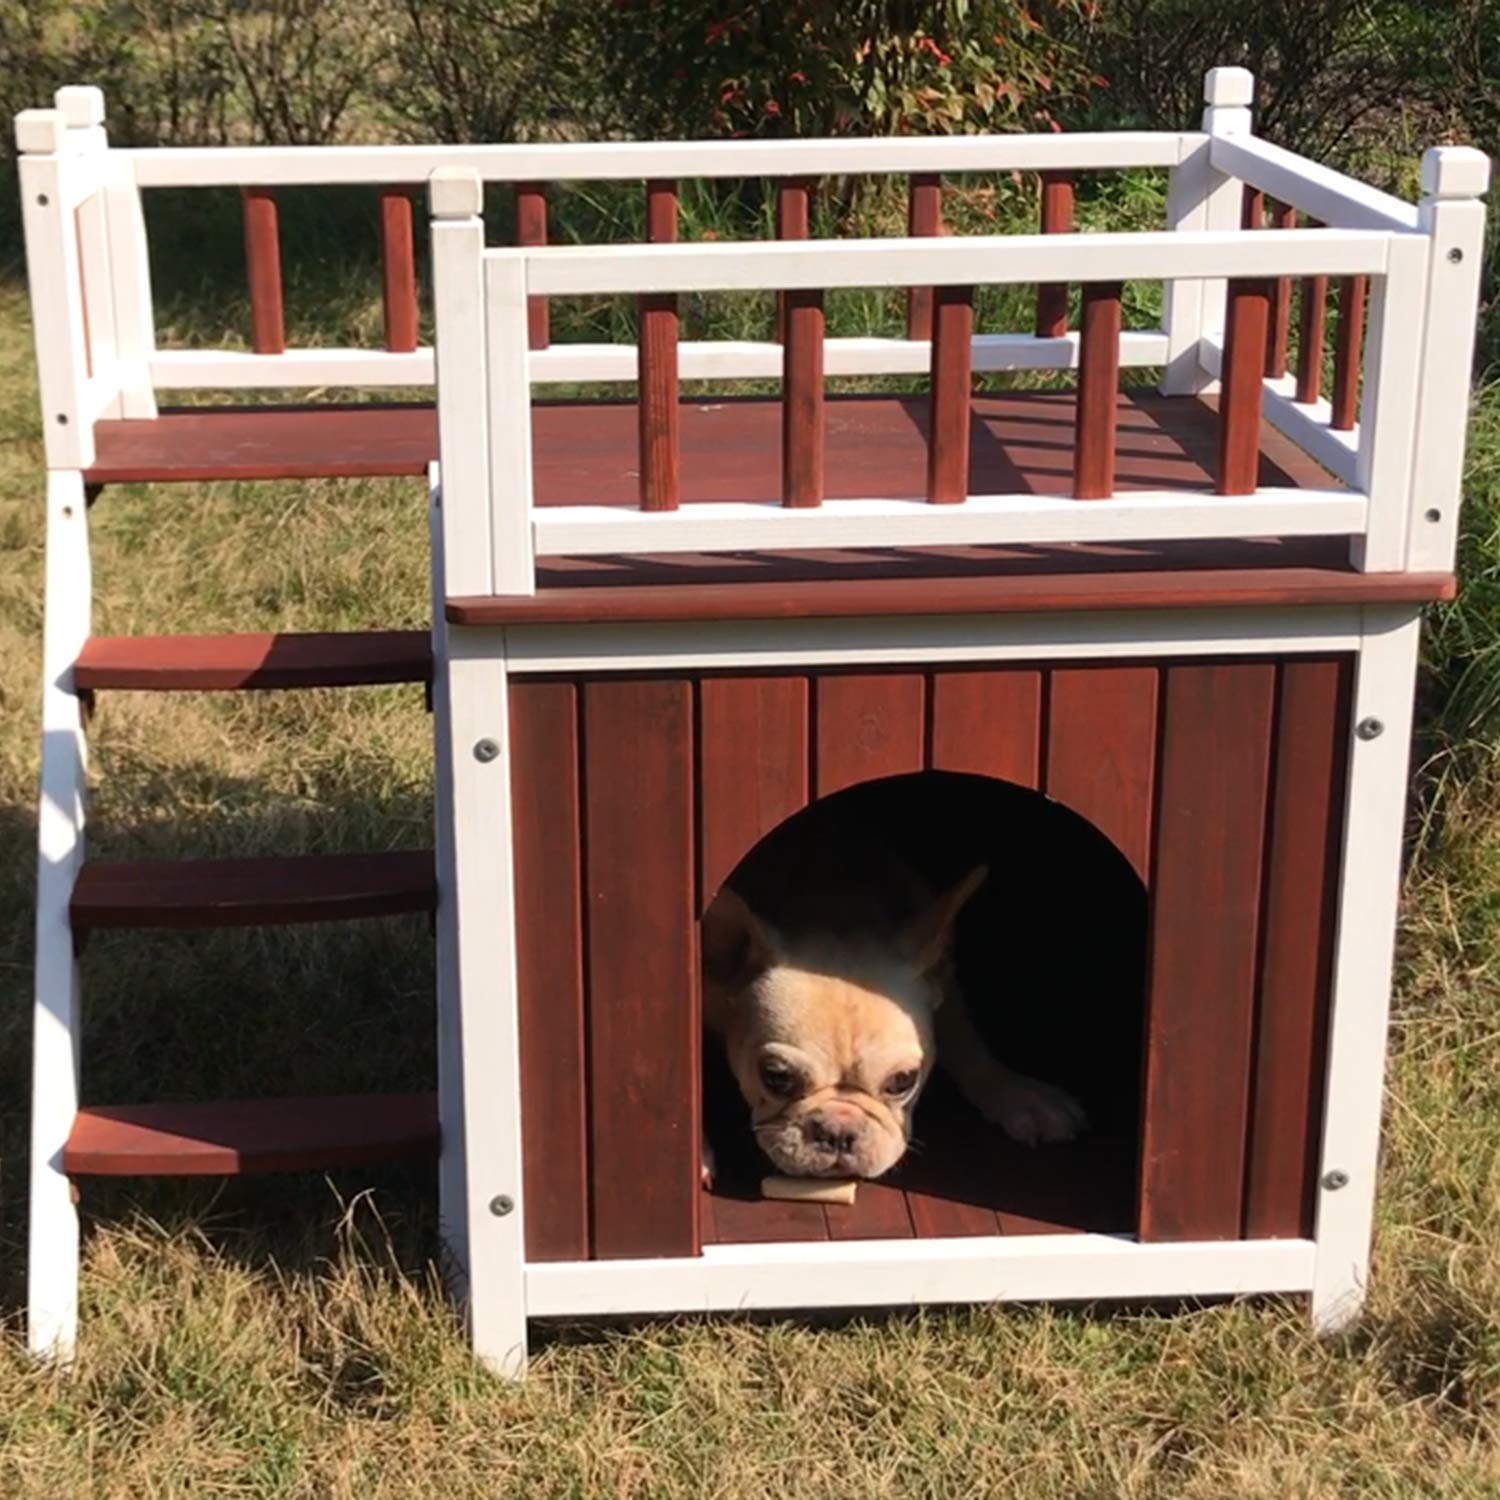 Aivituvin Wooden Dog/Cat House Outdoor and Indoor,Feral Pet Houses for Small Dogs,Kitty Condo/Shelter with Stair Design - 2 Storey